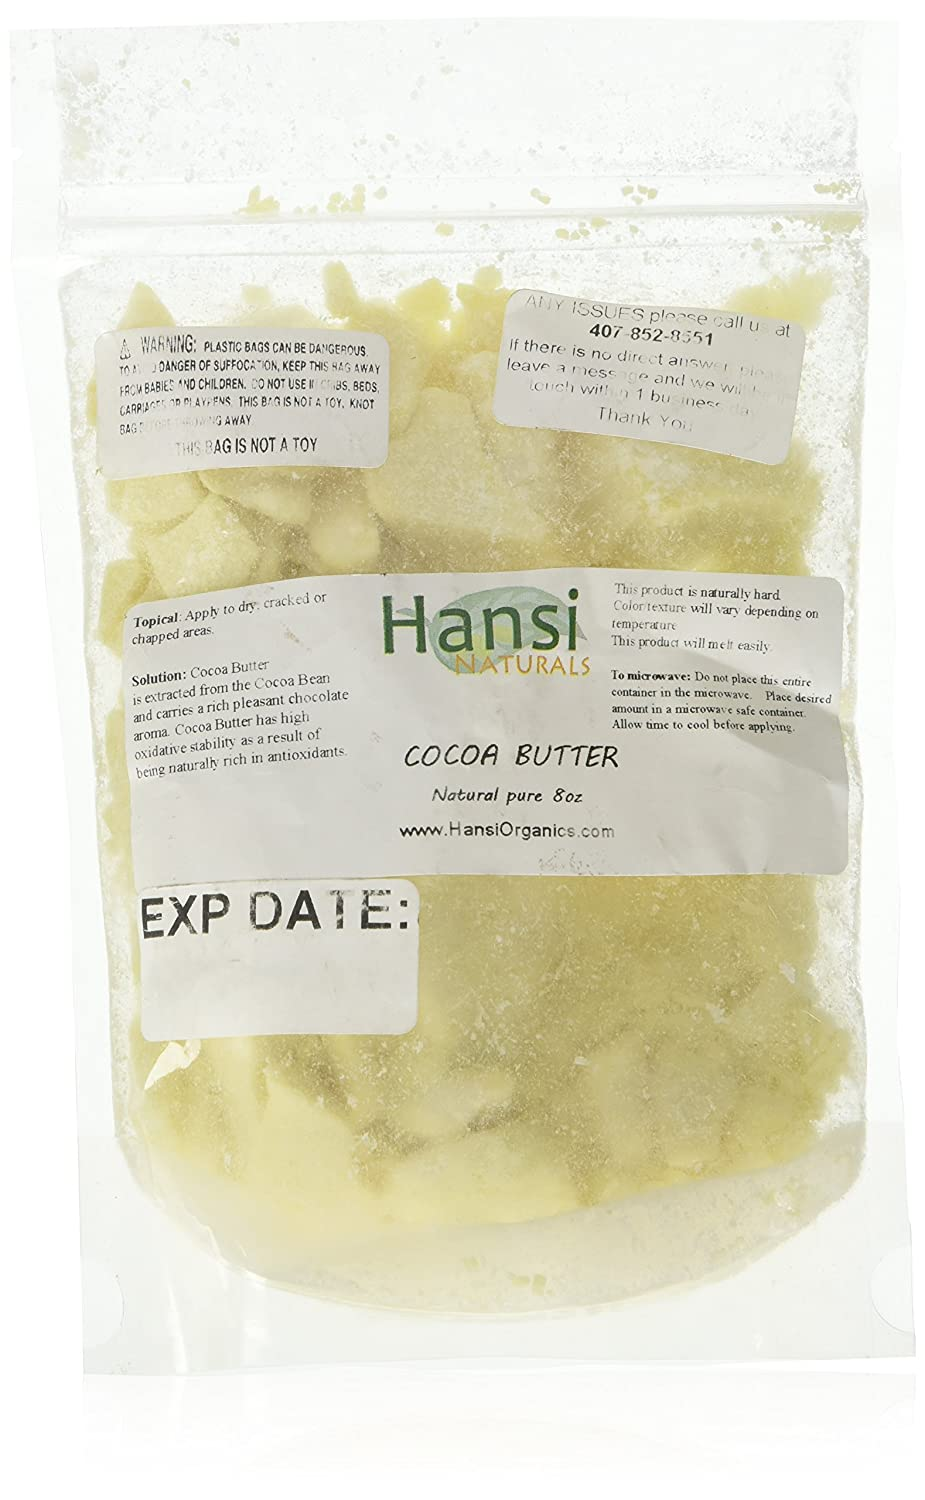 Raw Cocoa Butter 100% Pure 8oz ** SEALED BAG TO ENSURE FRESHNESS** by smellgood Hansi Naturals